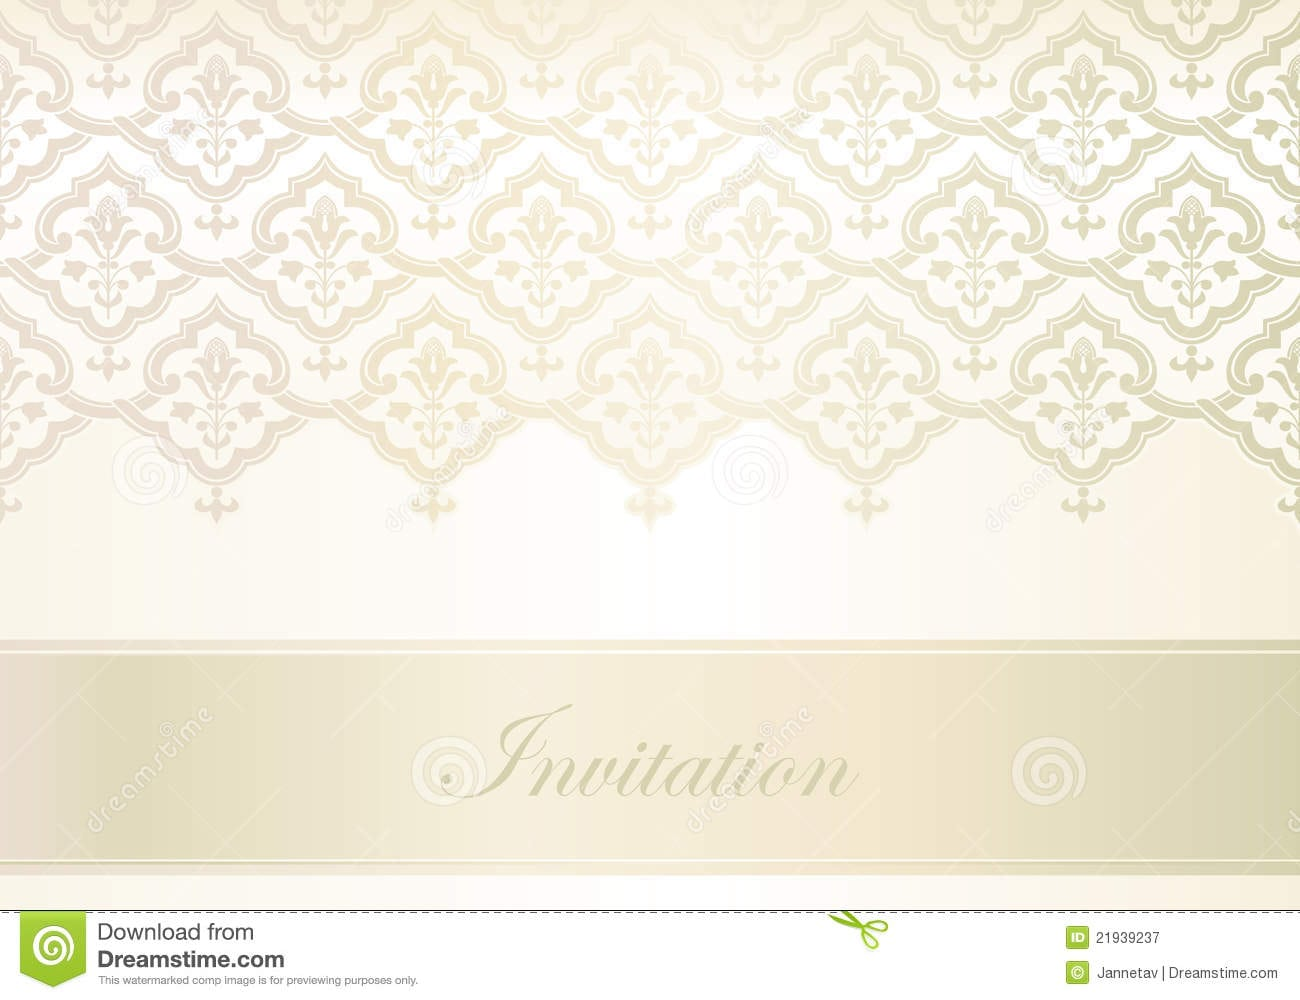 Free Download Template For Invitation Card